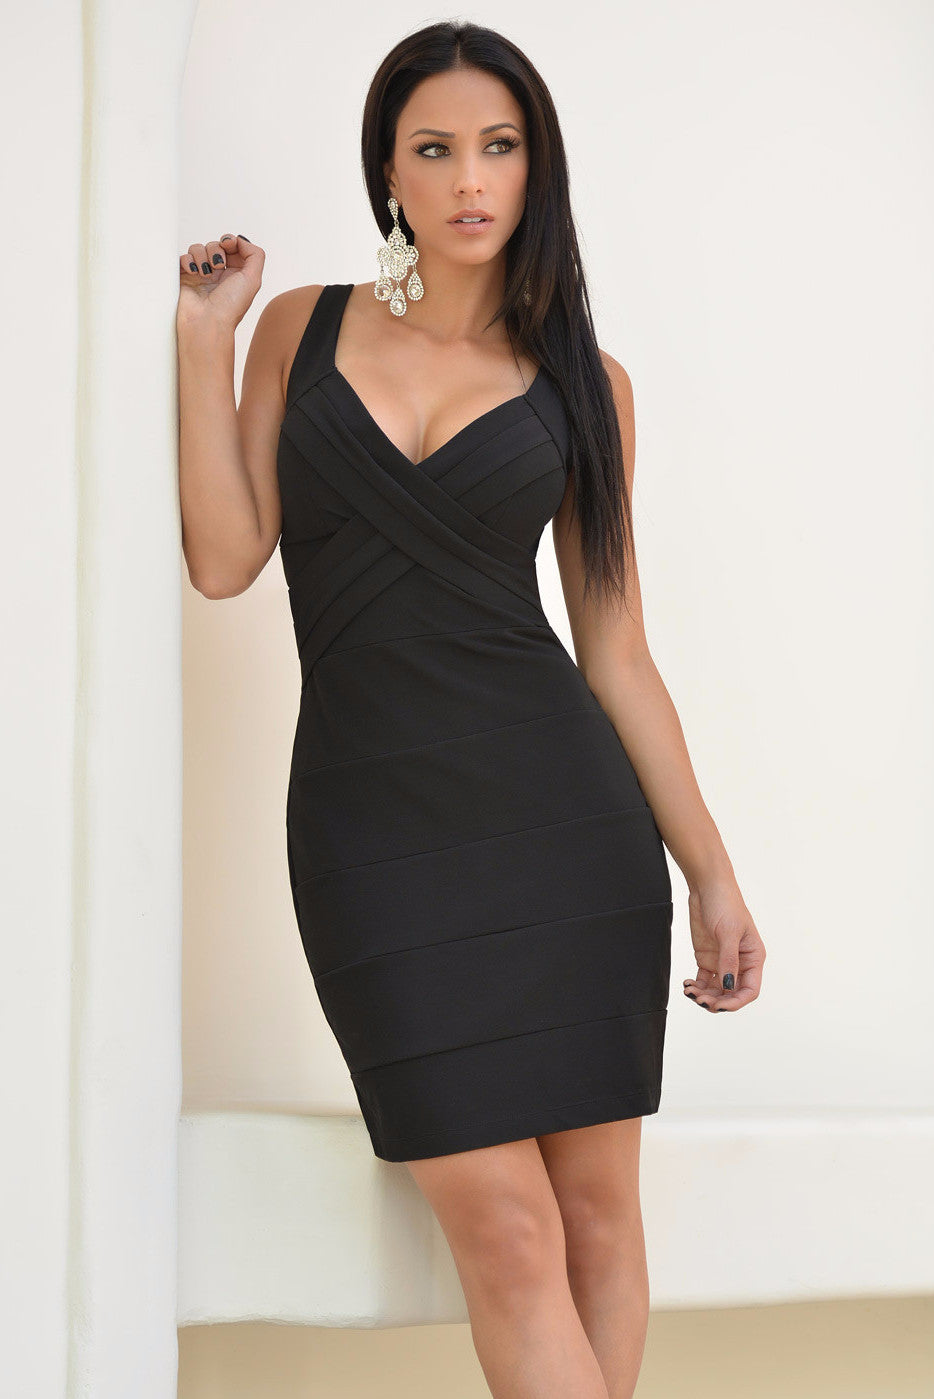 Mayte Black Mini Dress - Fashion Effect Store  - 4